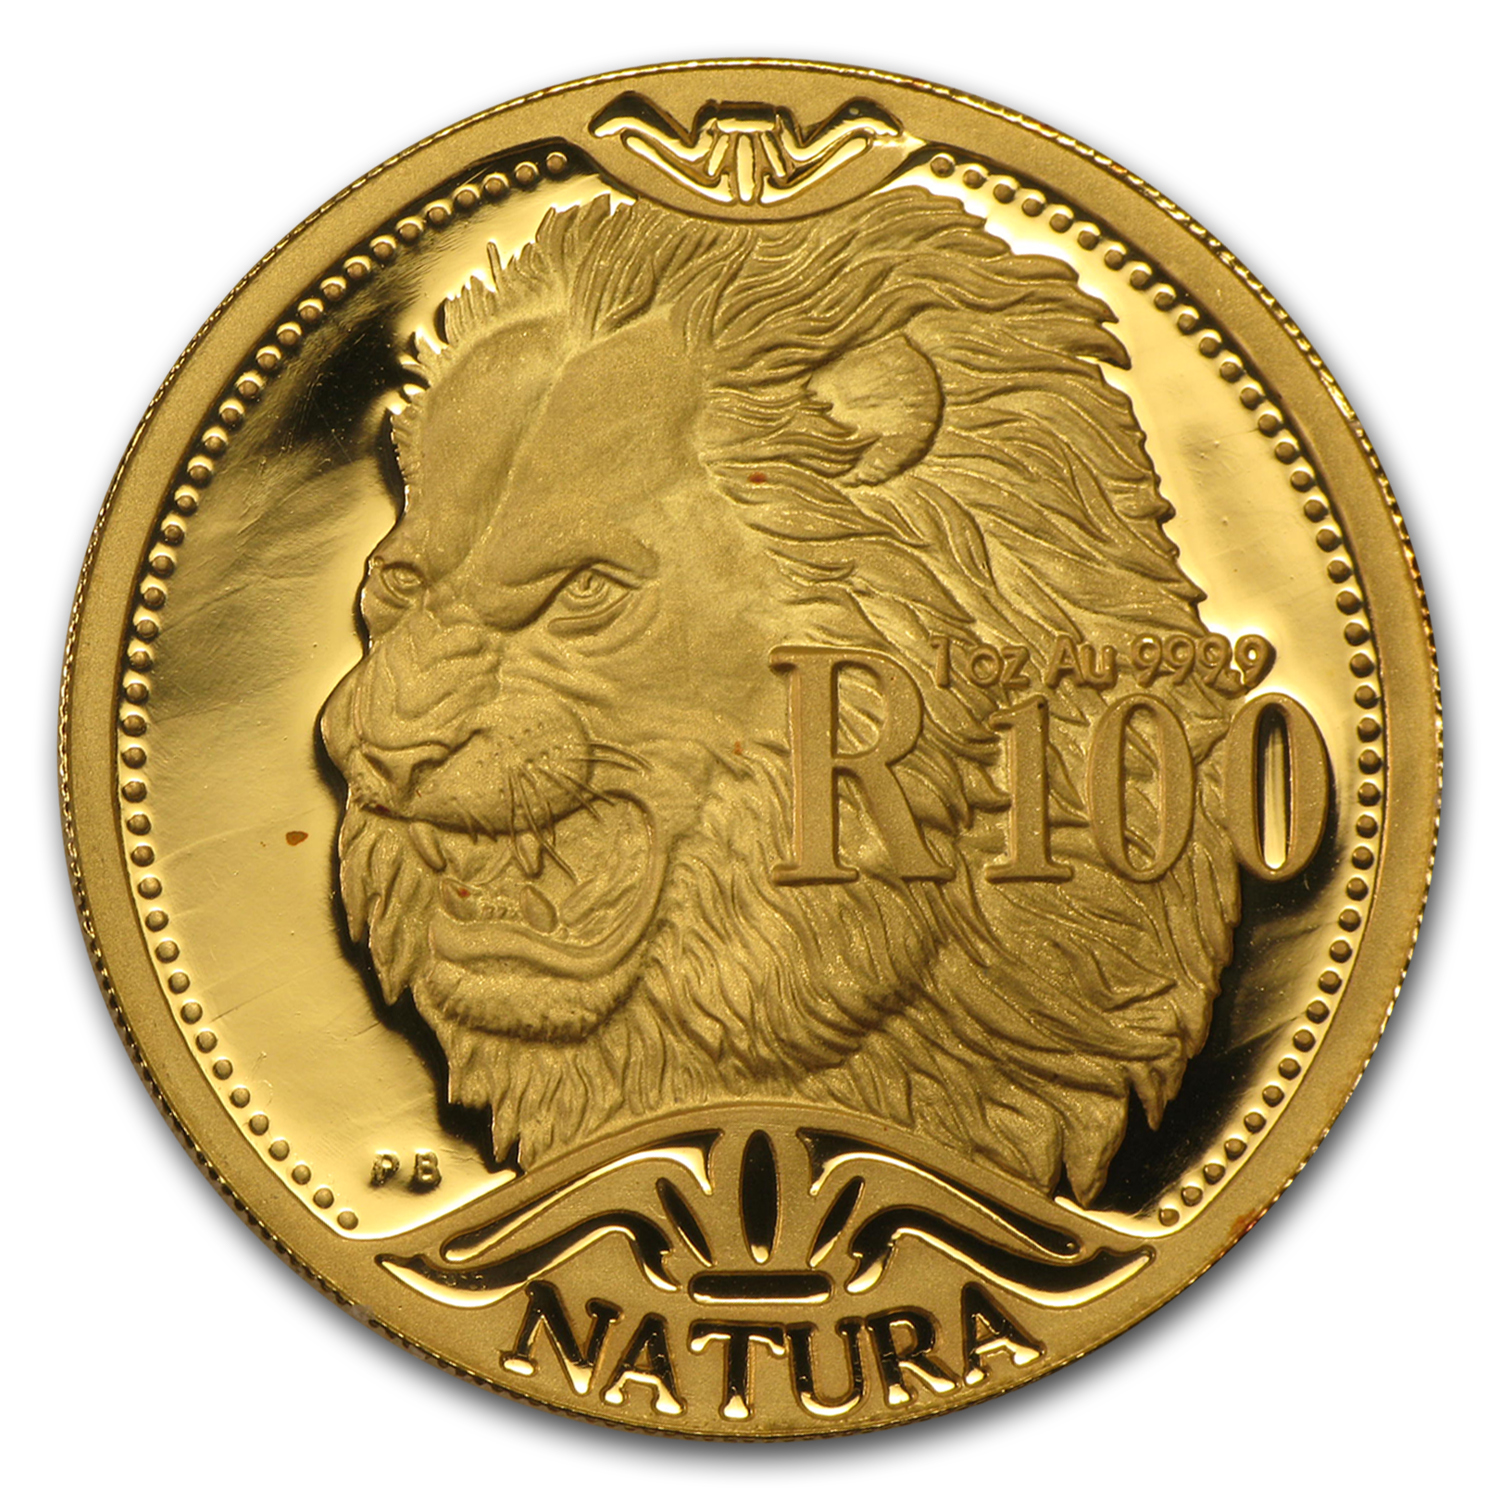 2003 South Africa 1 oz Proof Gold Natura Lion